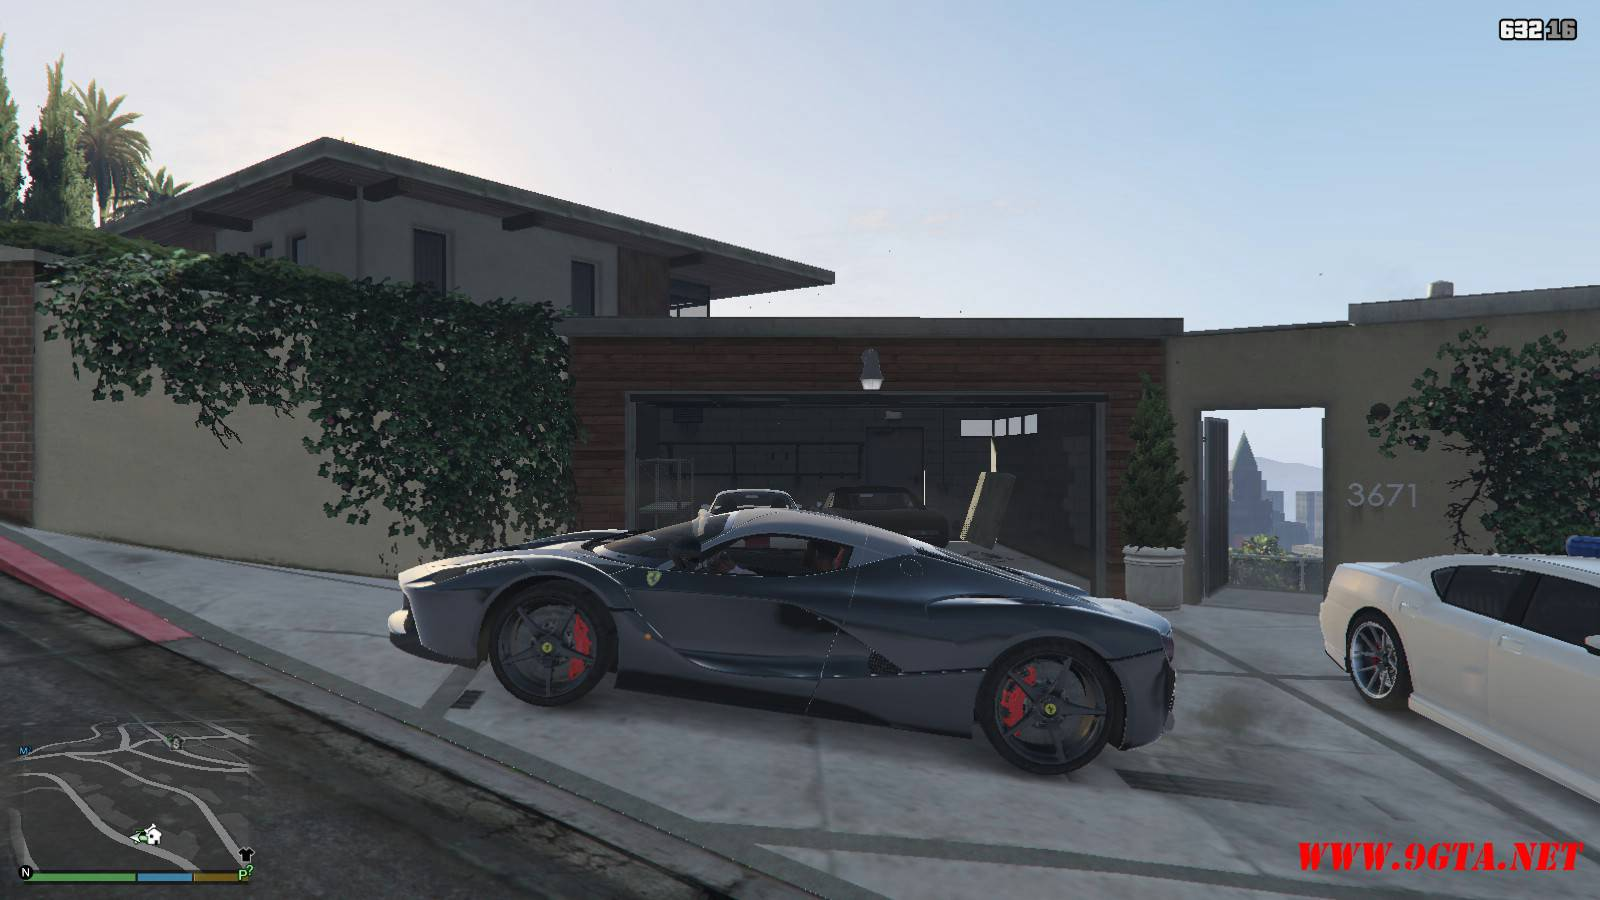 2015 Ferrari LeFerrari Mod For GTA5 (2)